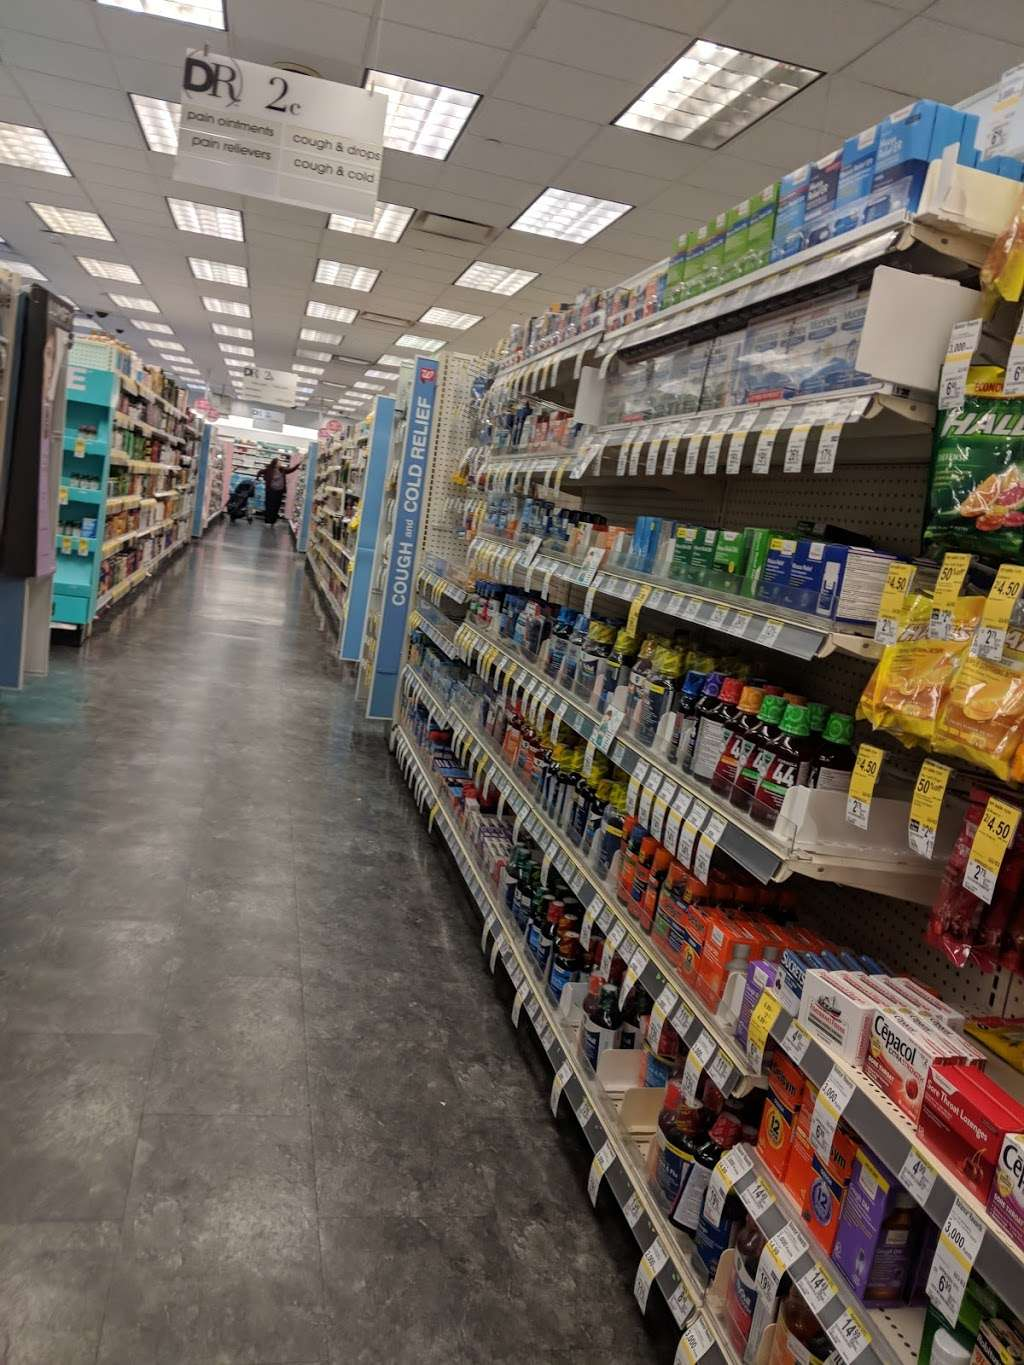 Duane Reade Pharmacy - pharmacy  | Photo 1 of 4 | Address: 52 River Dr S, Jersey City, NJ 07310, USA | Phone: (201) 216-1166